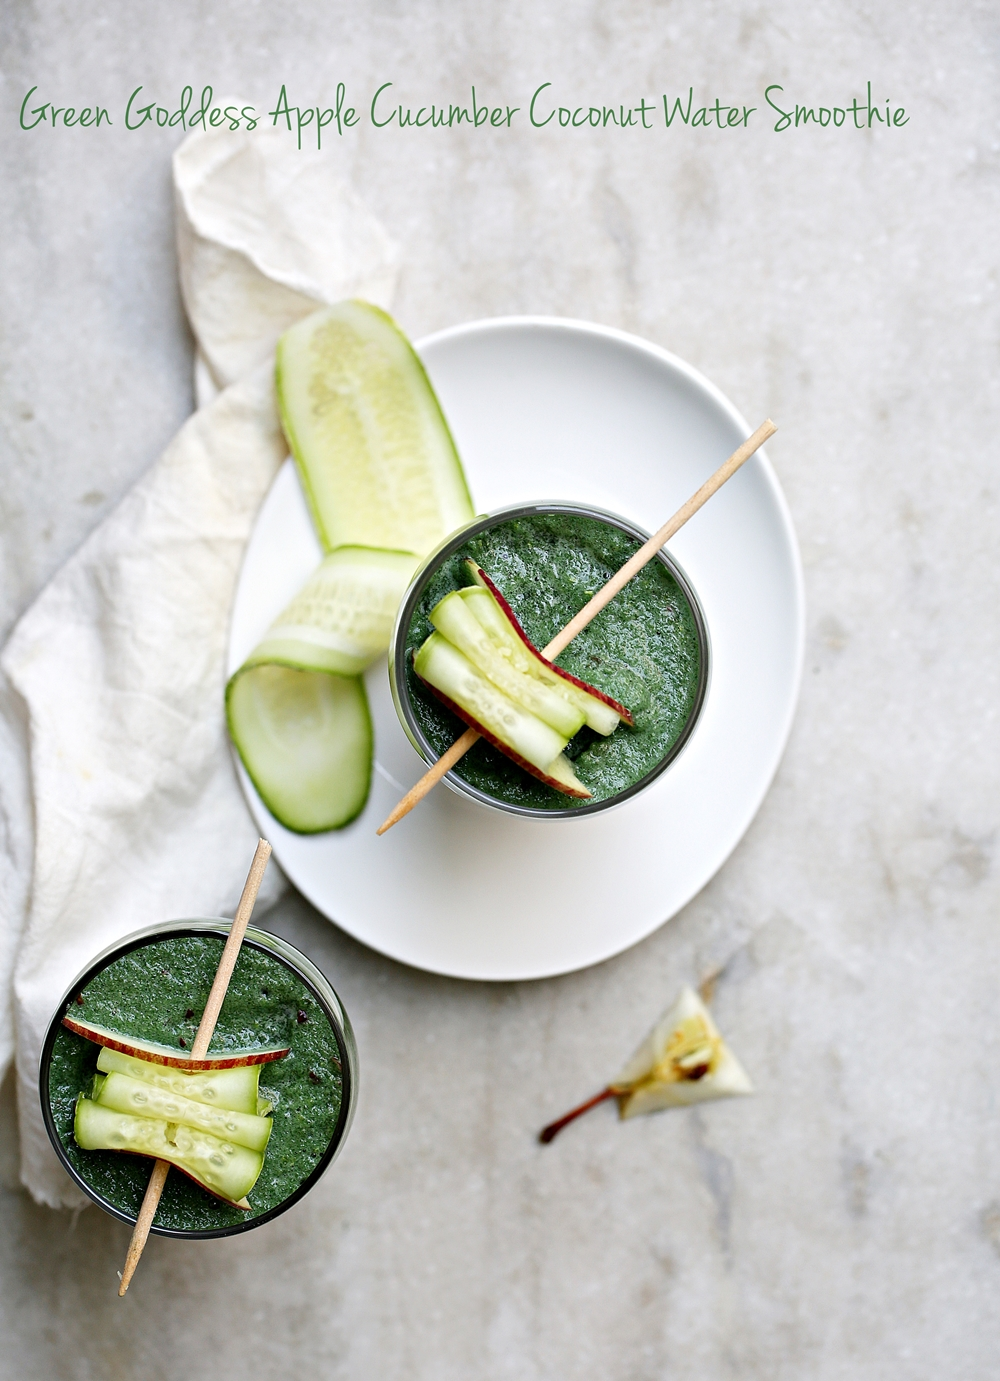 Green Goddess Apple Cucumber Coconut Water Smoothie